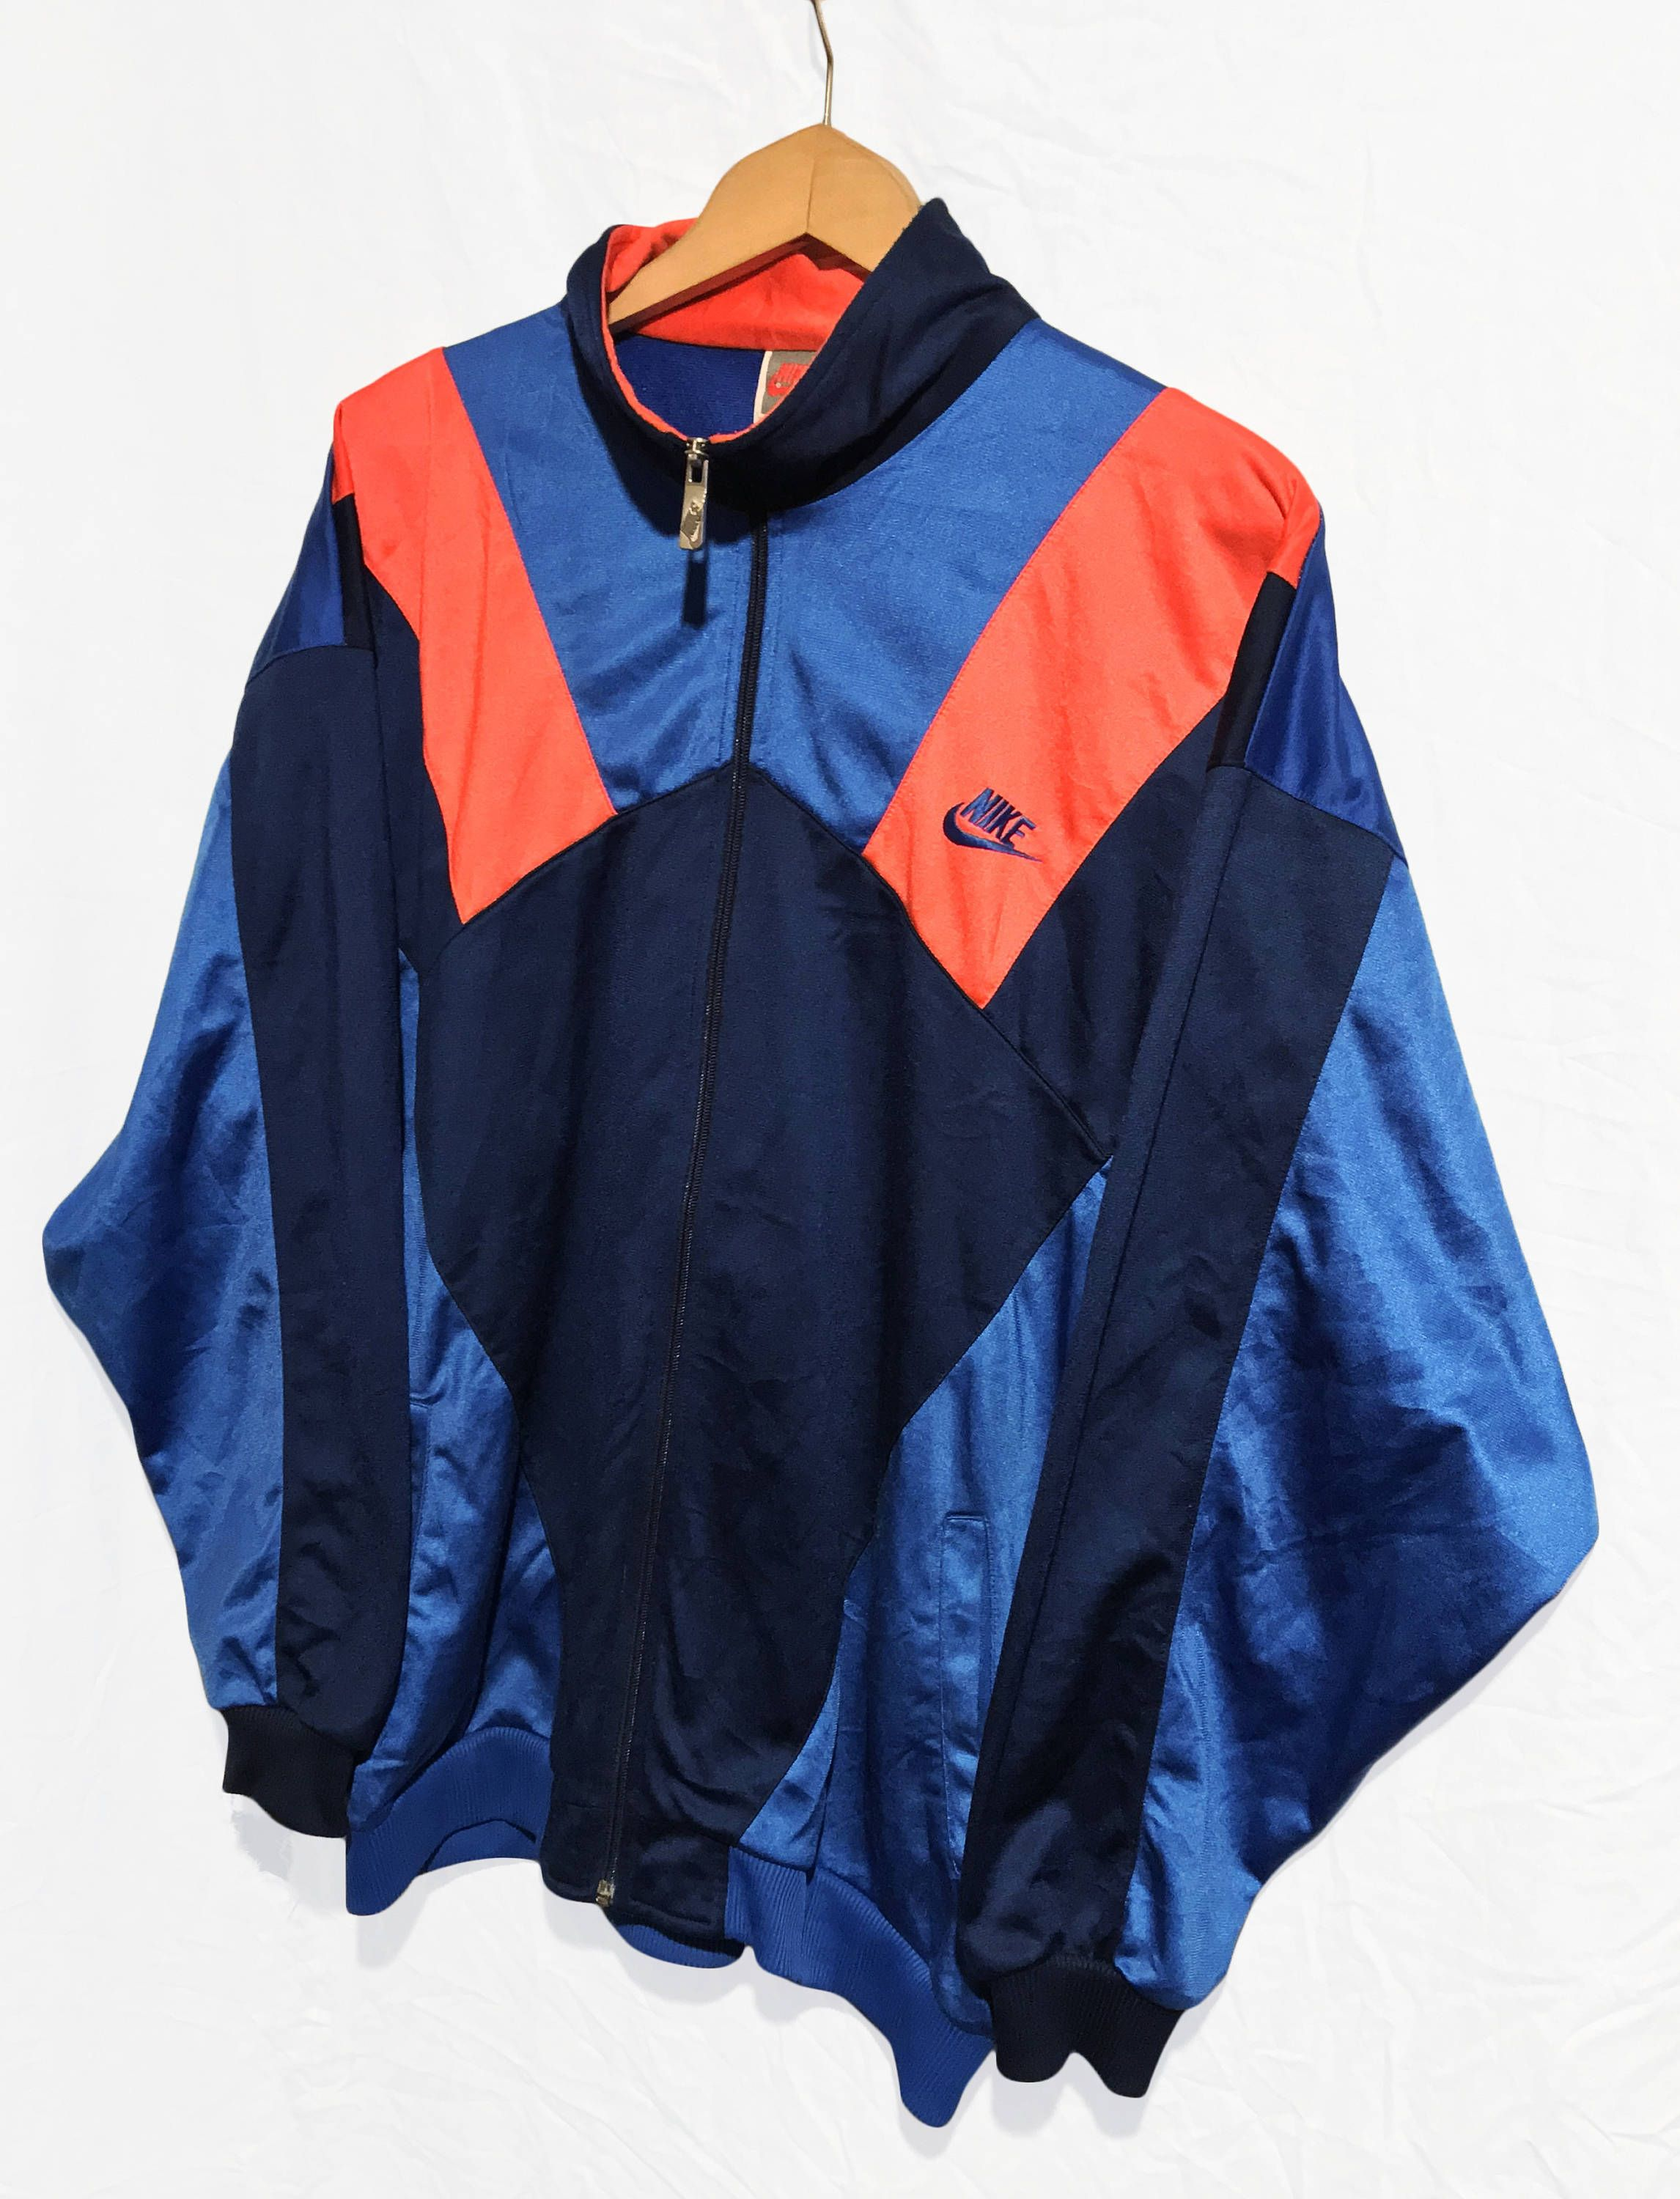 Details about RARE ~ Retro Nike Windbreaker Jacket Men's XL Fluorescent Green, Blue & Gray